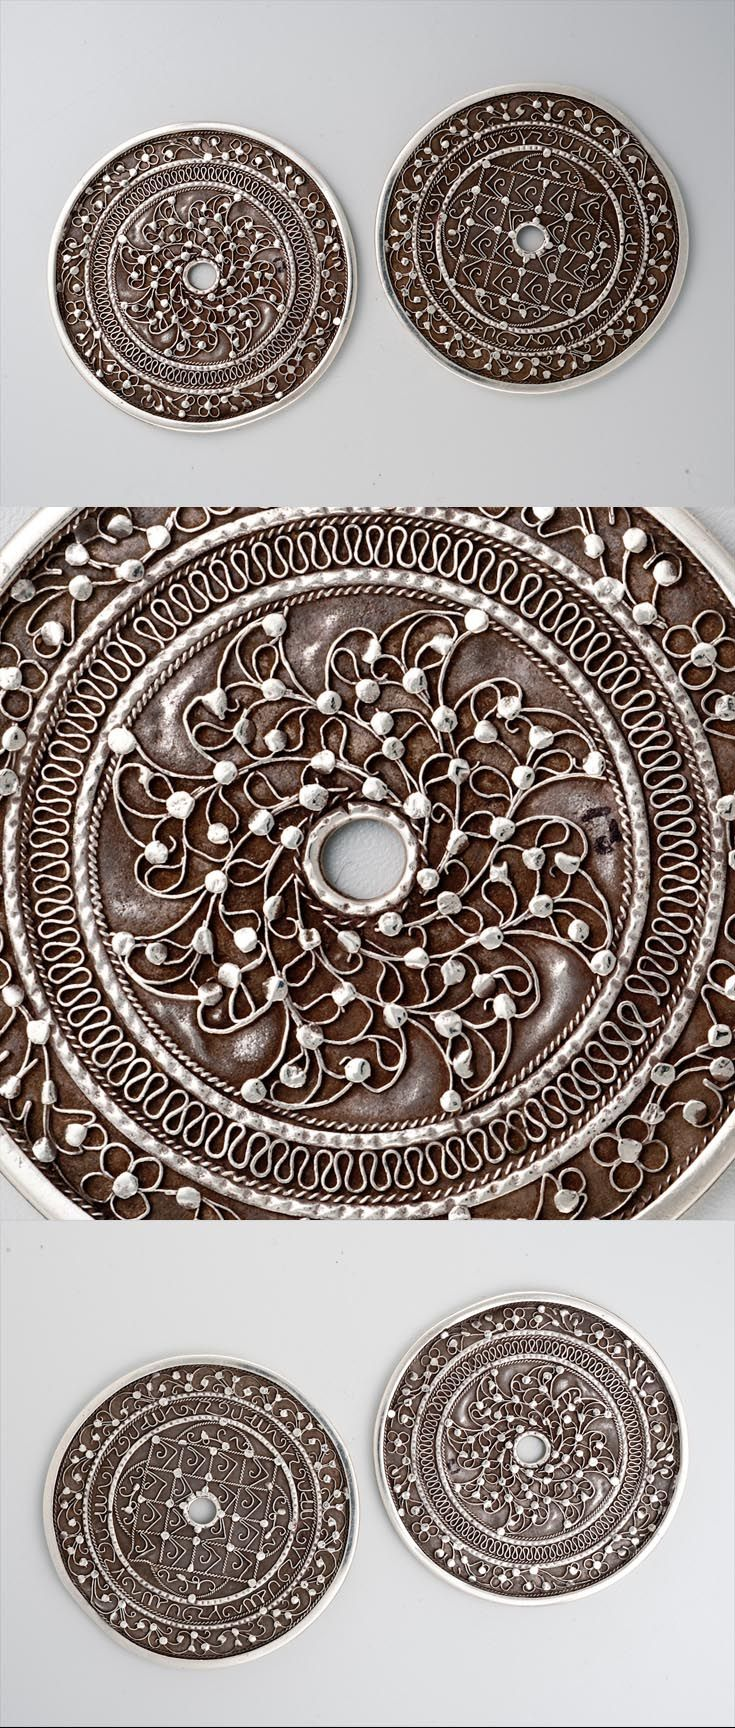 Indonesia - Sulawesi | Pair of pendant discs ~ Kawari ~ from the Bugis people; silver | ca. early 20th century || POR